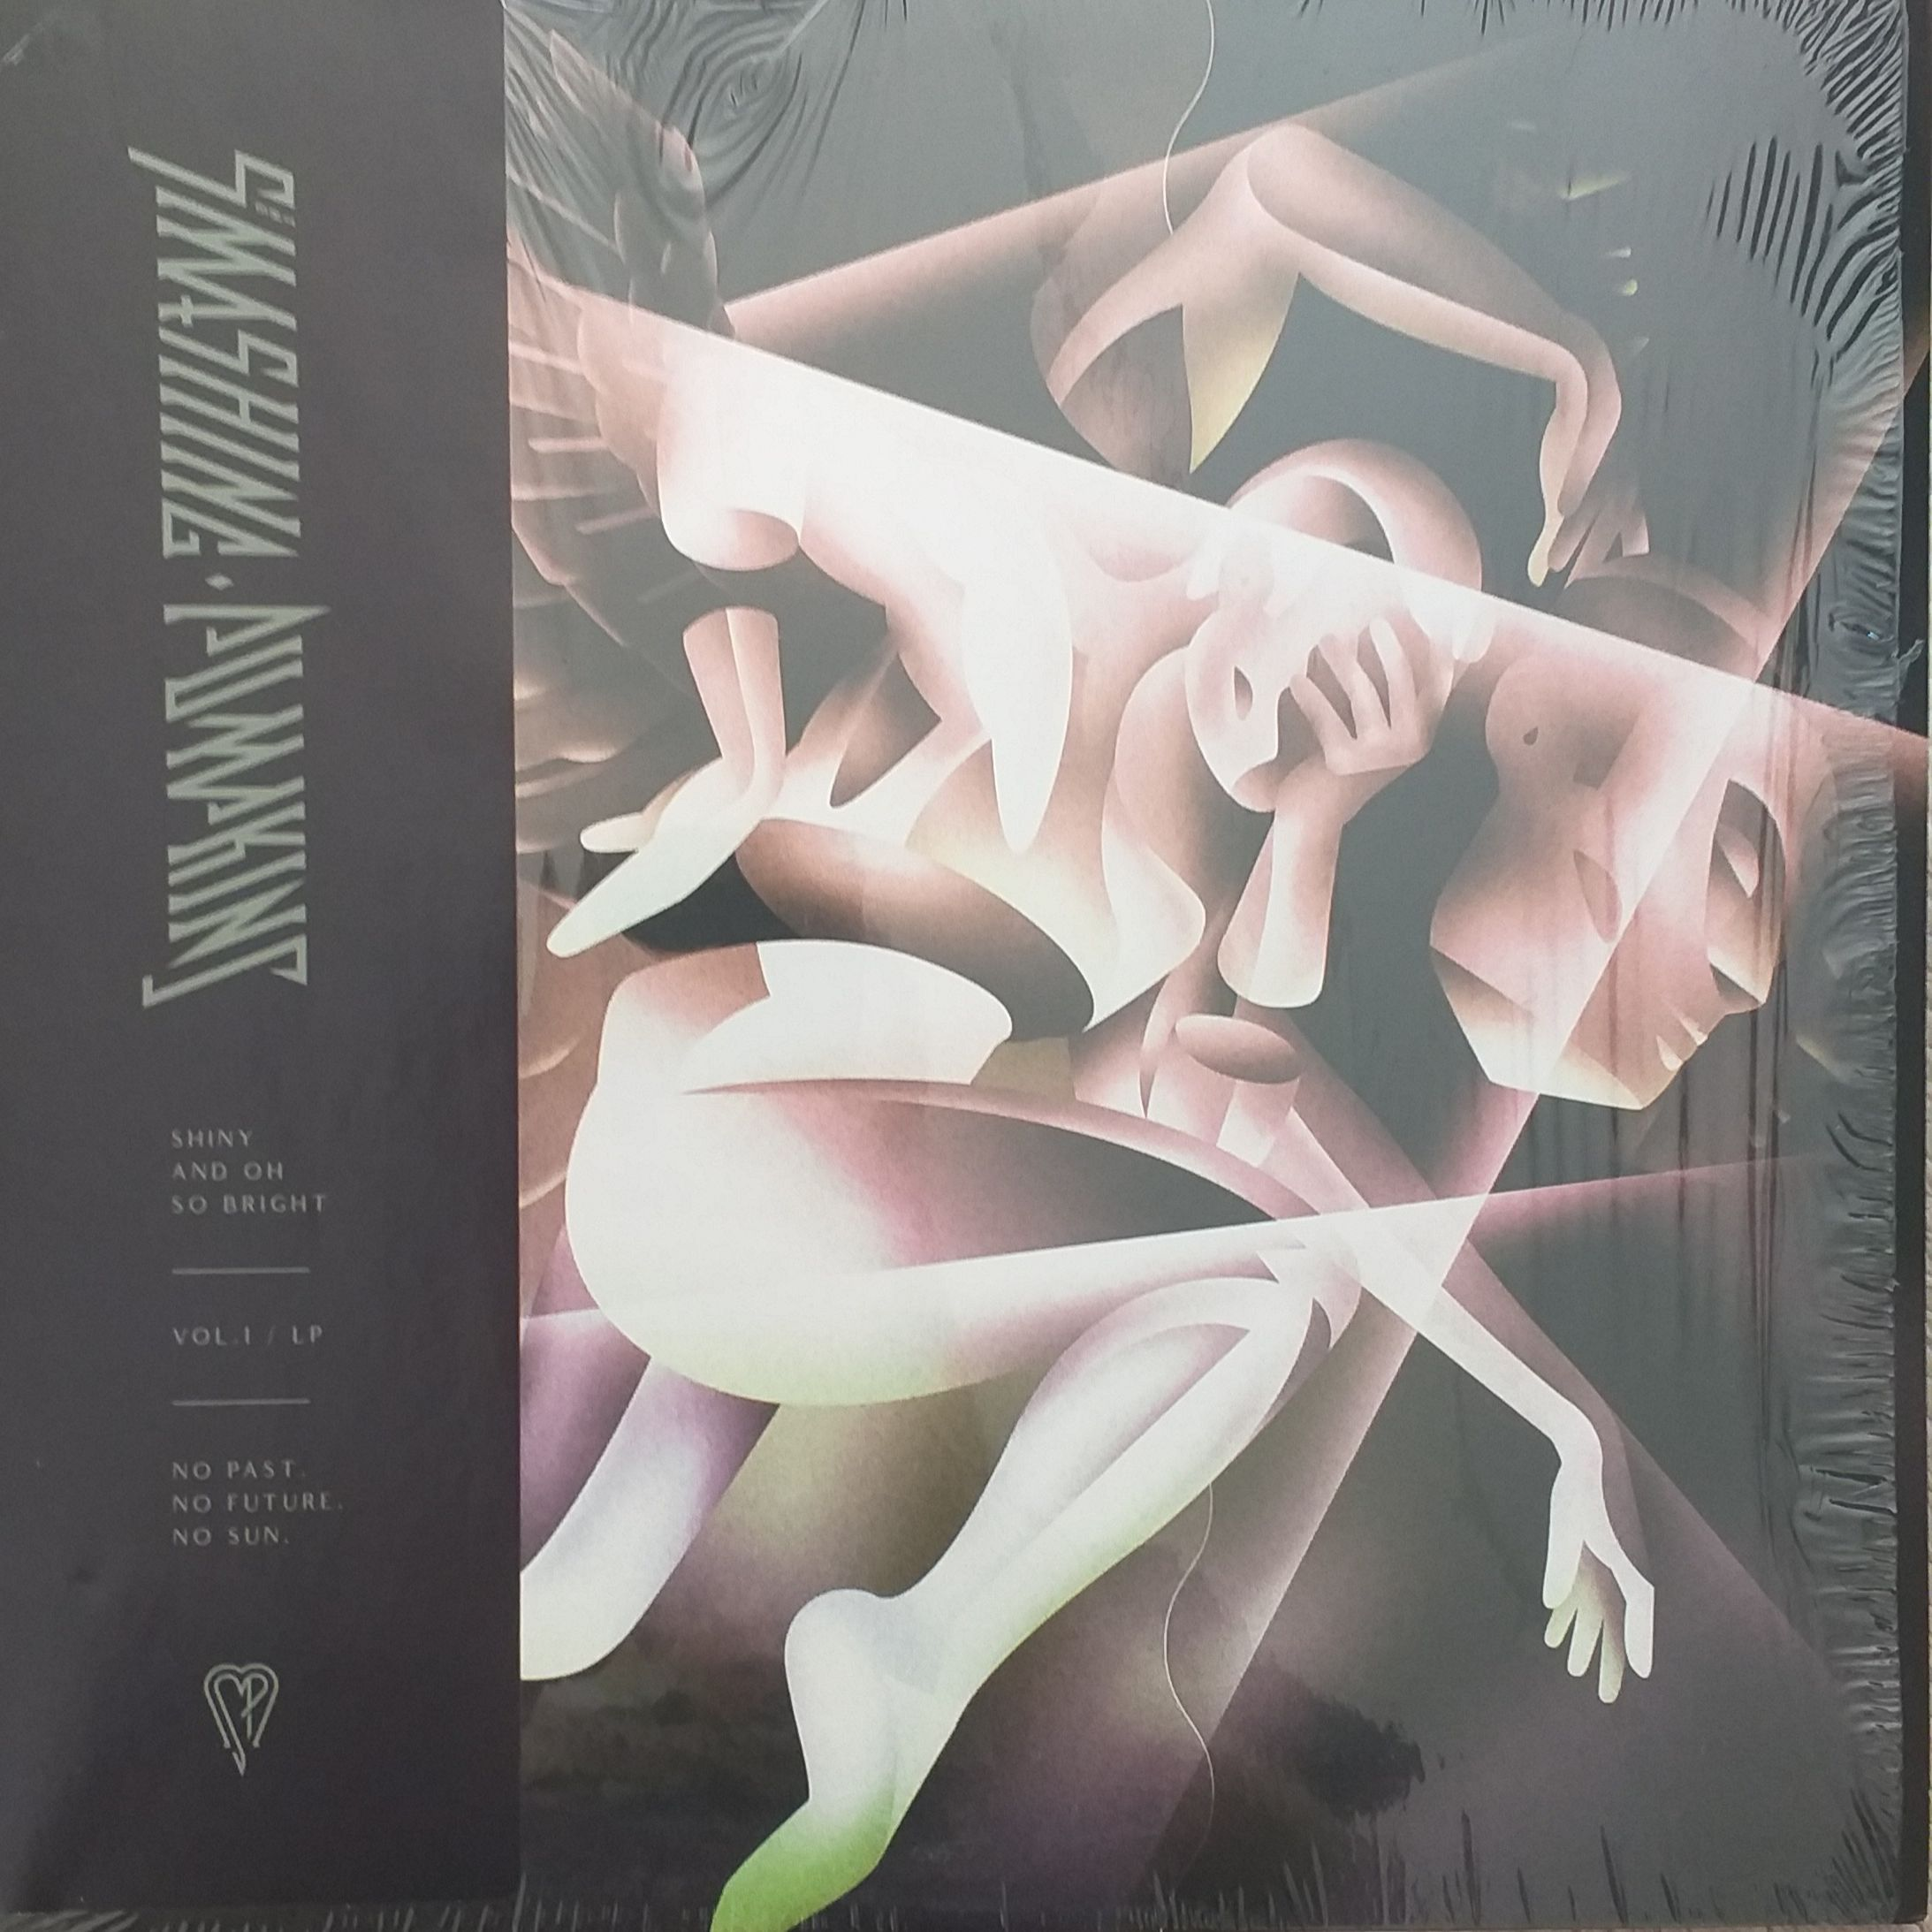 Smashing pumpkins  Shiny and oh so bright vol.1 LP undefined